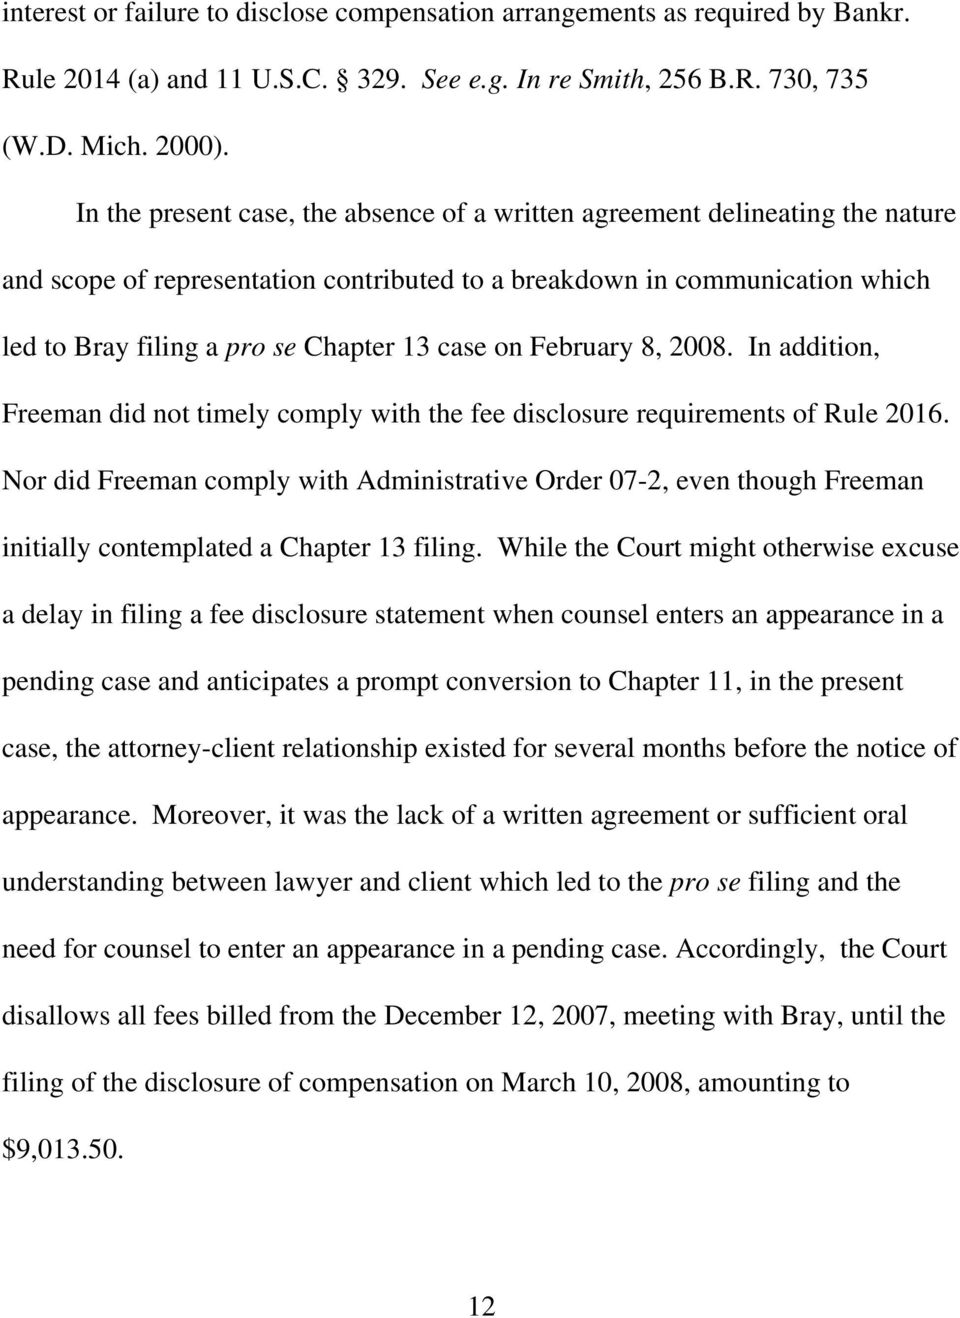 case on February 8, 2008. In addition, Freeman did not timely comply with the fee disclosure requirements of Rule 2016.